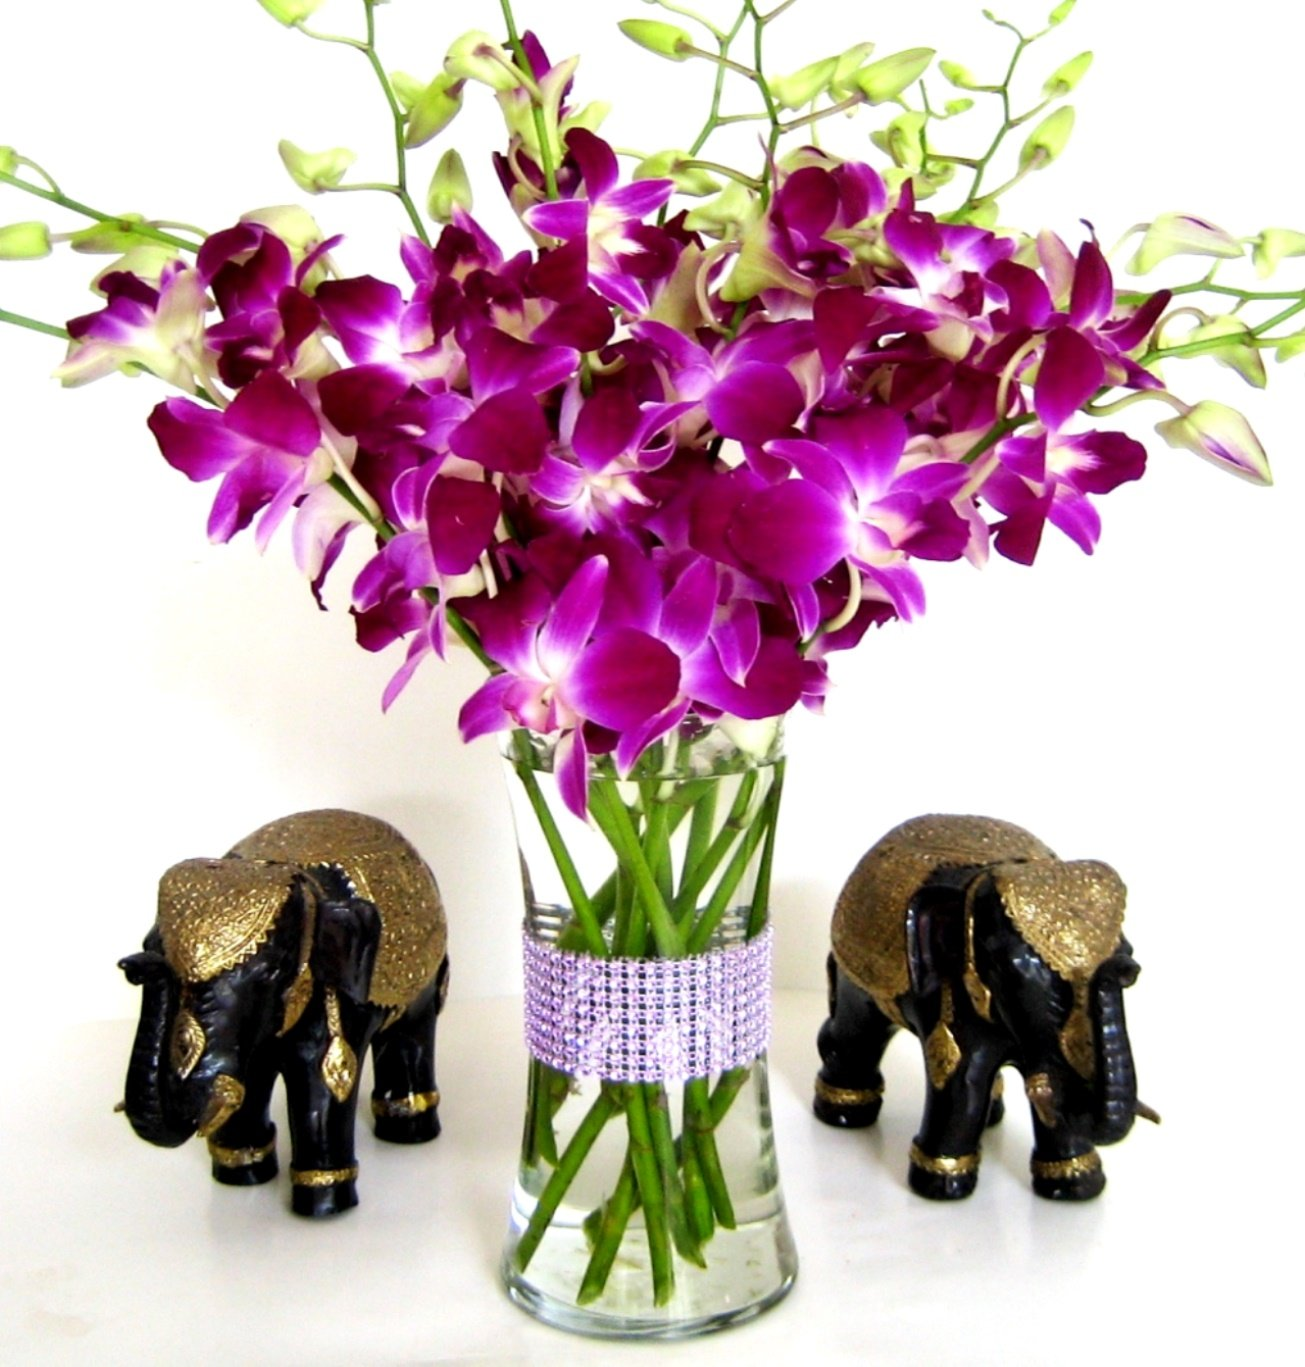 Amazon purple dendrobium orchids 10 stems orchid with amazon purple dendrobium orchids 10 stems orchid with rhinestone mesh ribbon vase fresh cut format orchid flowers grocery gourmet food izmirmasajfo Images